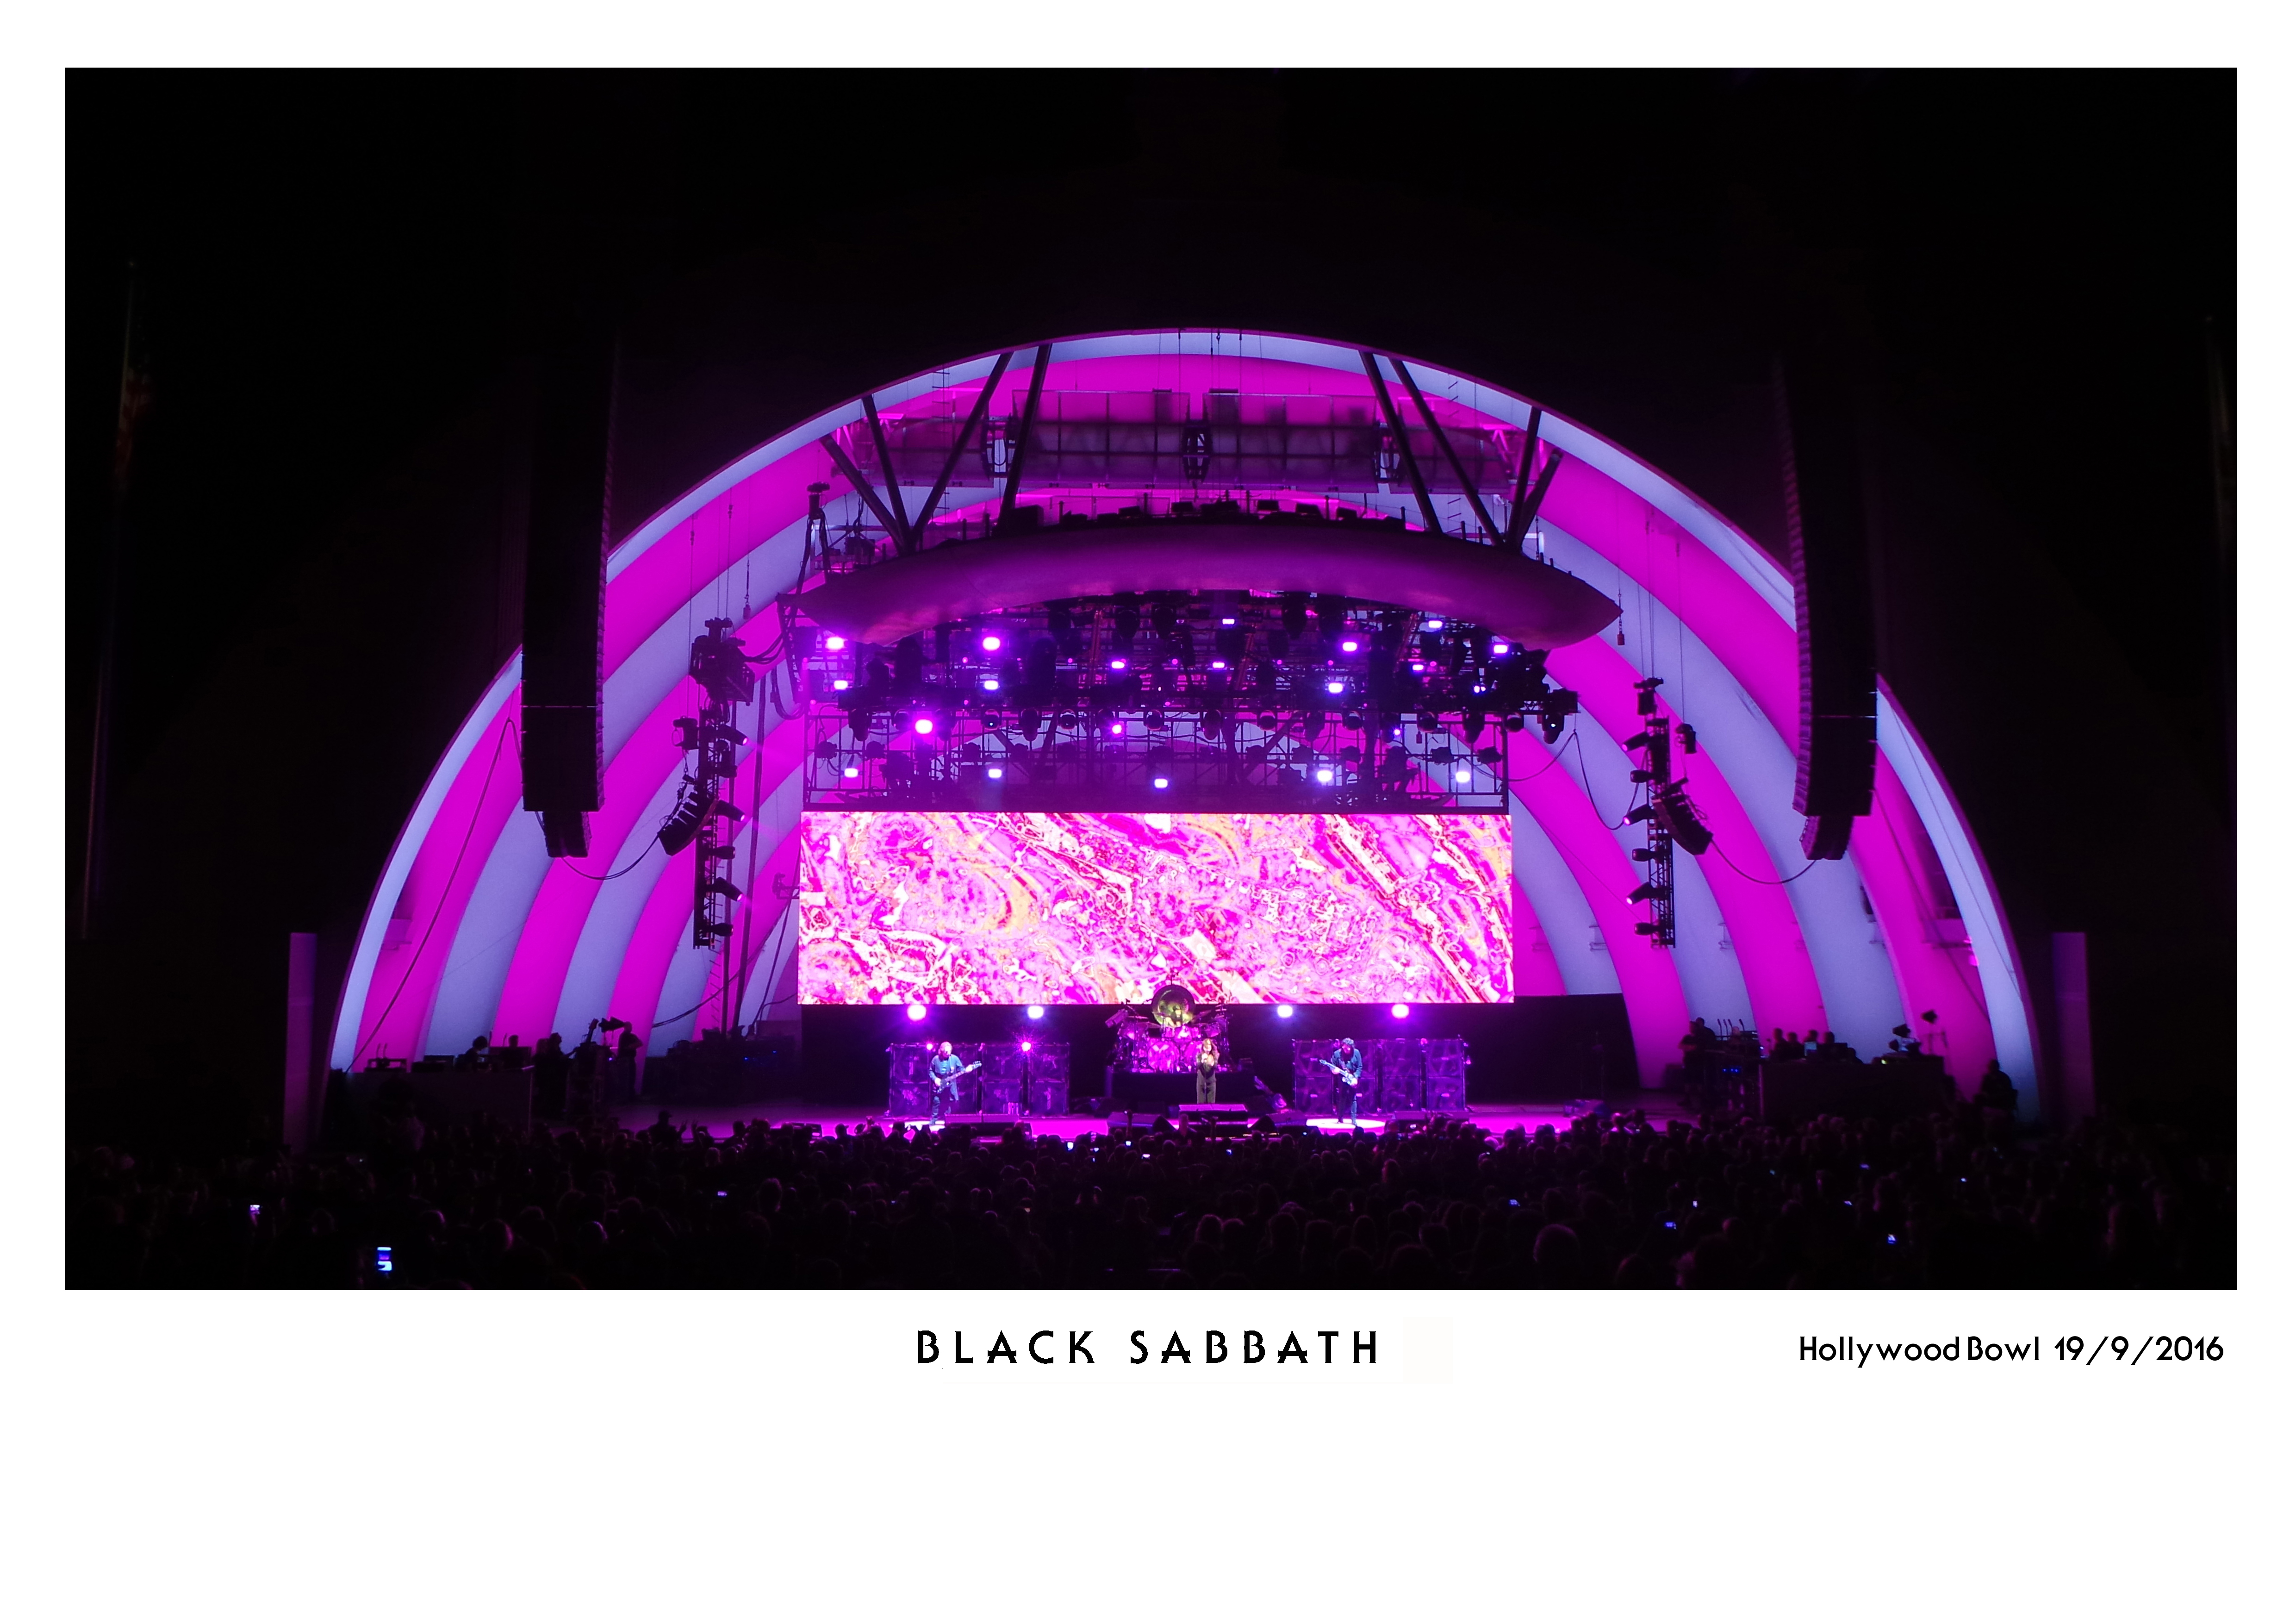 home of metal black sabbath live at the hollywood bowl 19 9 2016 the end tour. Black Bedroom Furniture Sets. Home Design Ideas